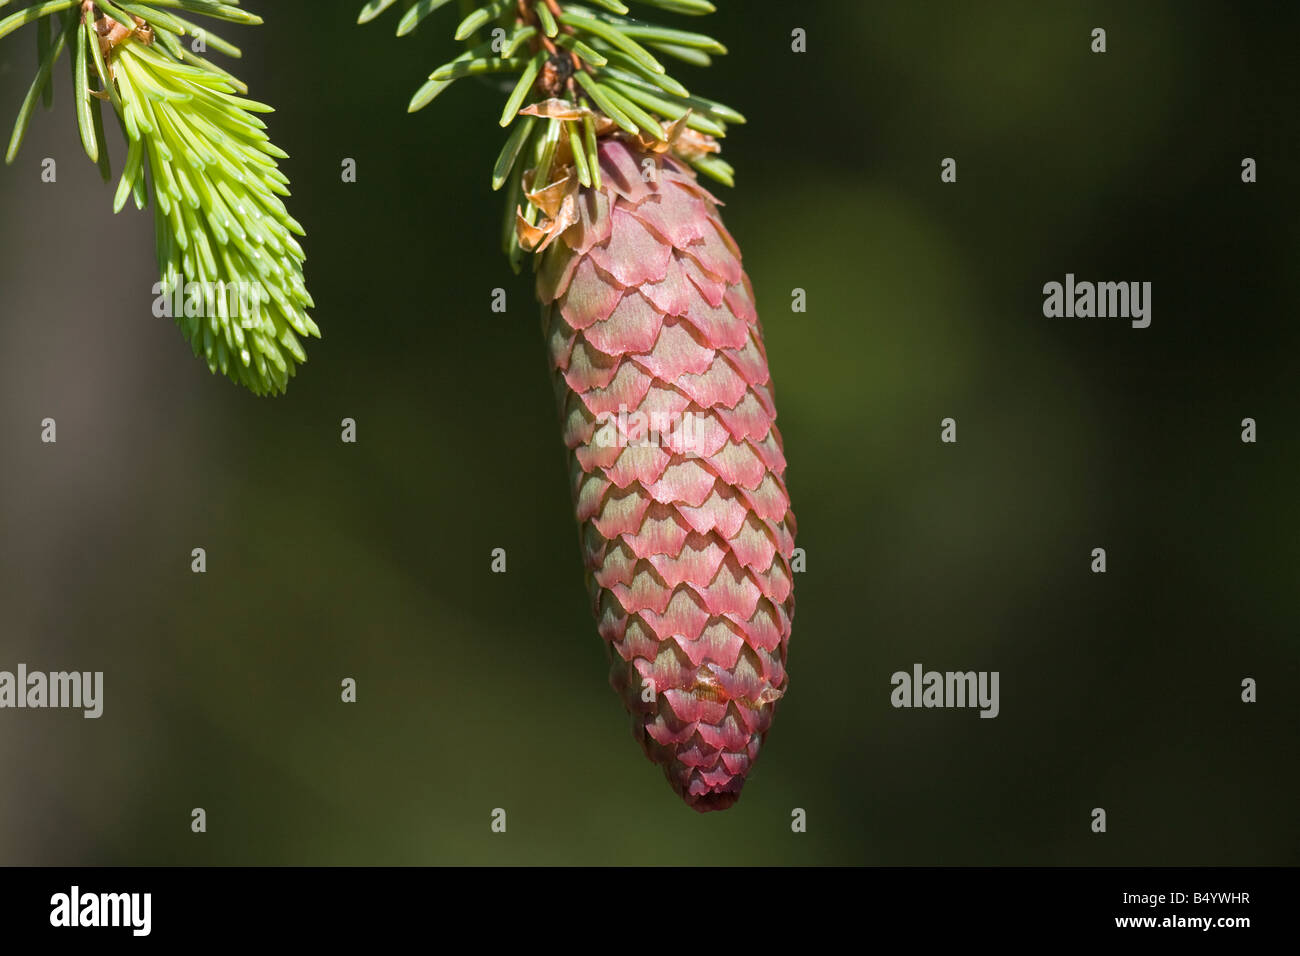 Picea abies Norway Spruce tree conifer evergreen - Stock Image